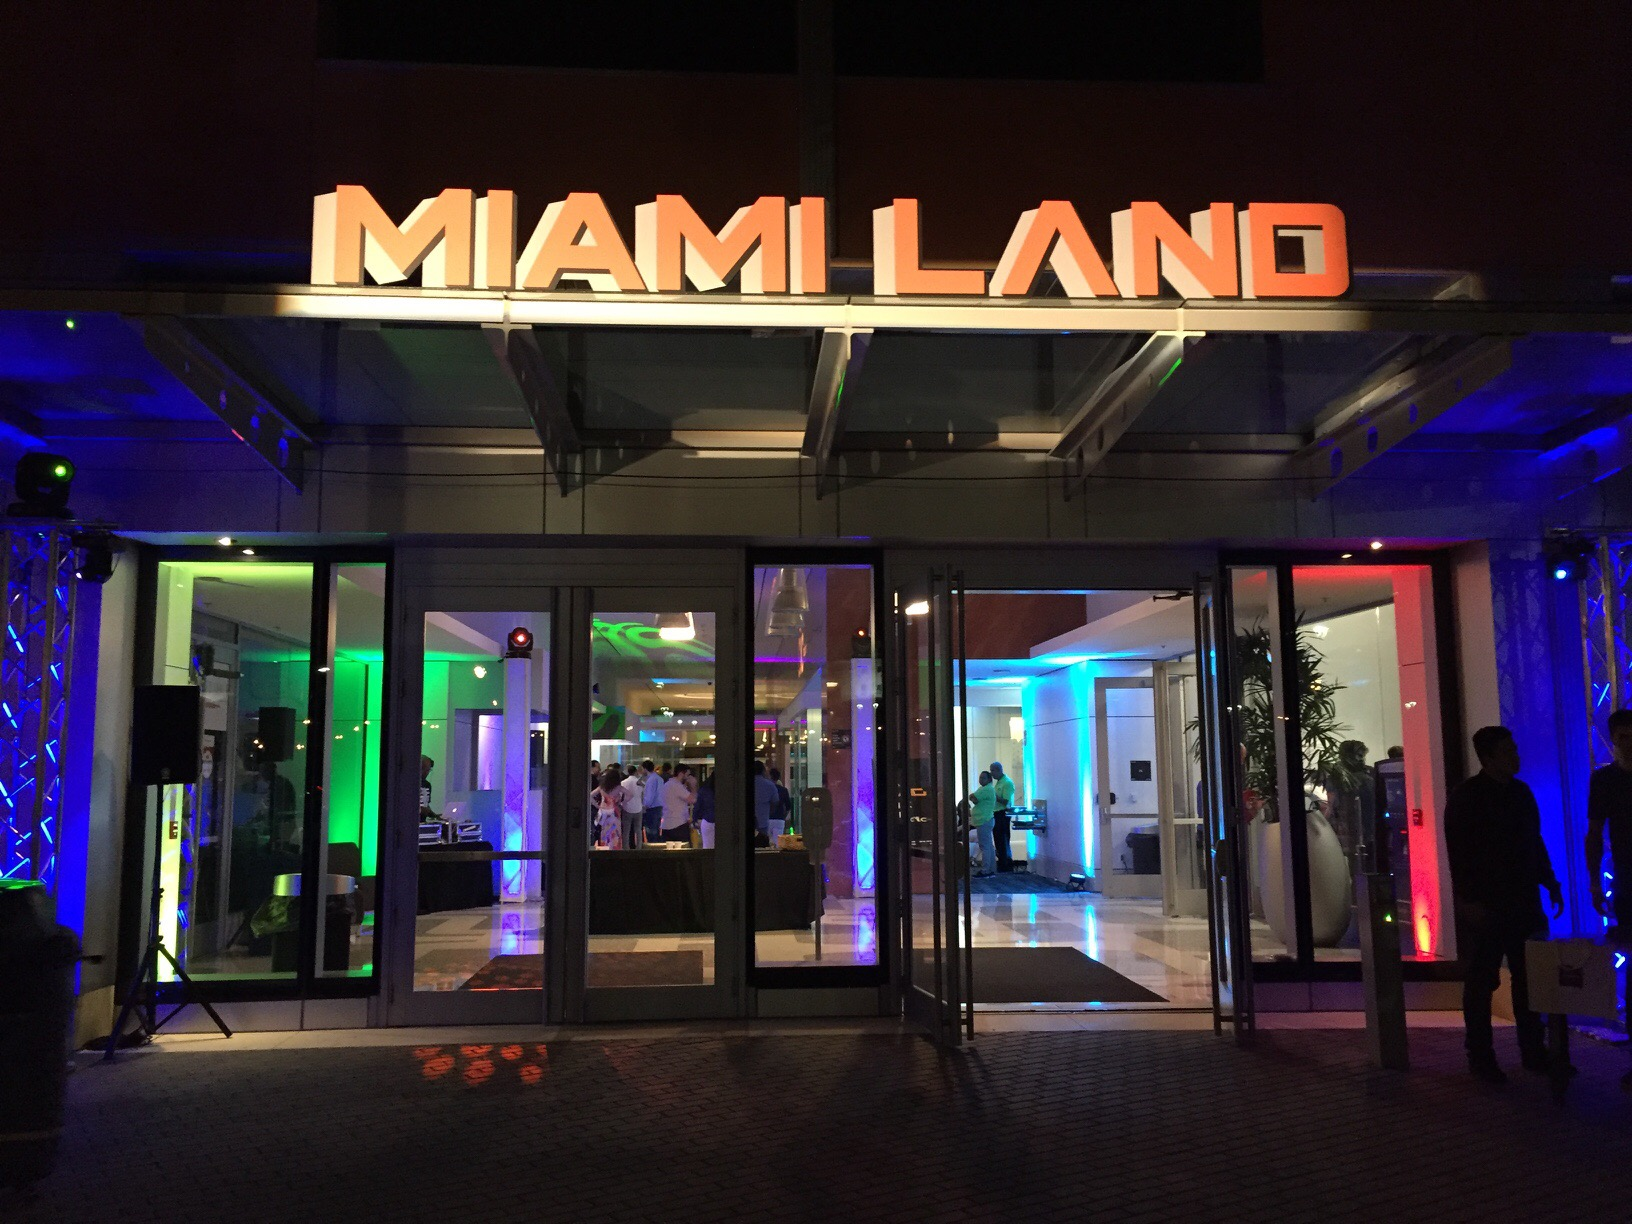 The New Tropic relaunches Startup miami to connect region's